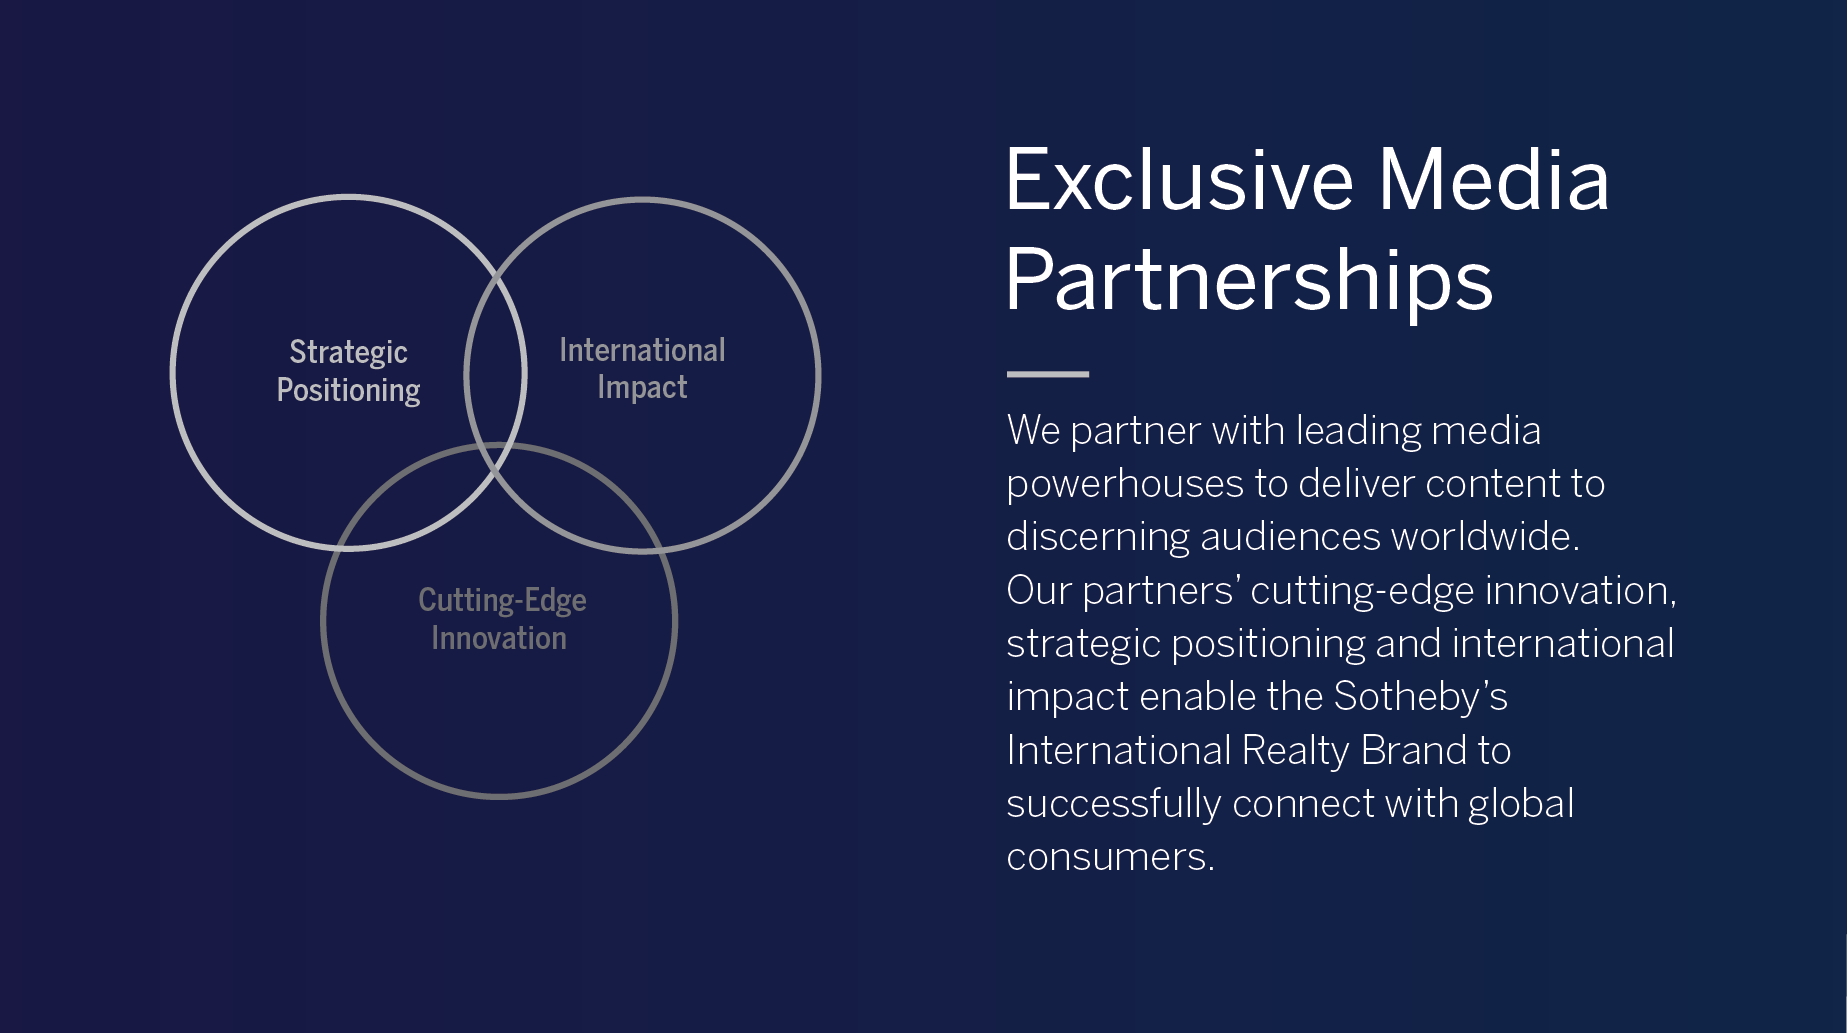 Exclusive Media Partnerships - We partner with leading media powerhouses to deliver content to discerning audiences worldwide. Our partners cutting-edge innovation, strategic positioning and international impact enable the Sotheby's International Realty Brand to successfully connect with global consumers.